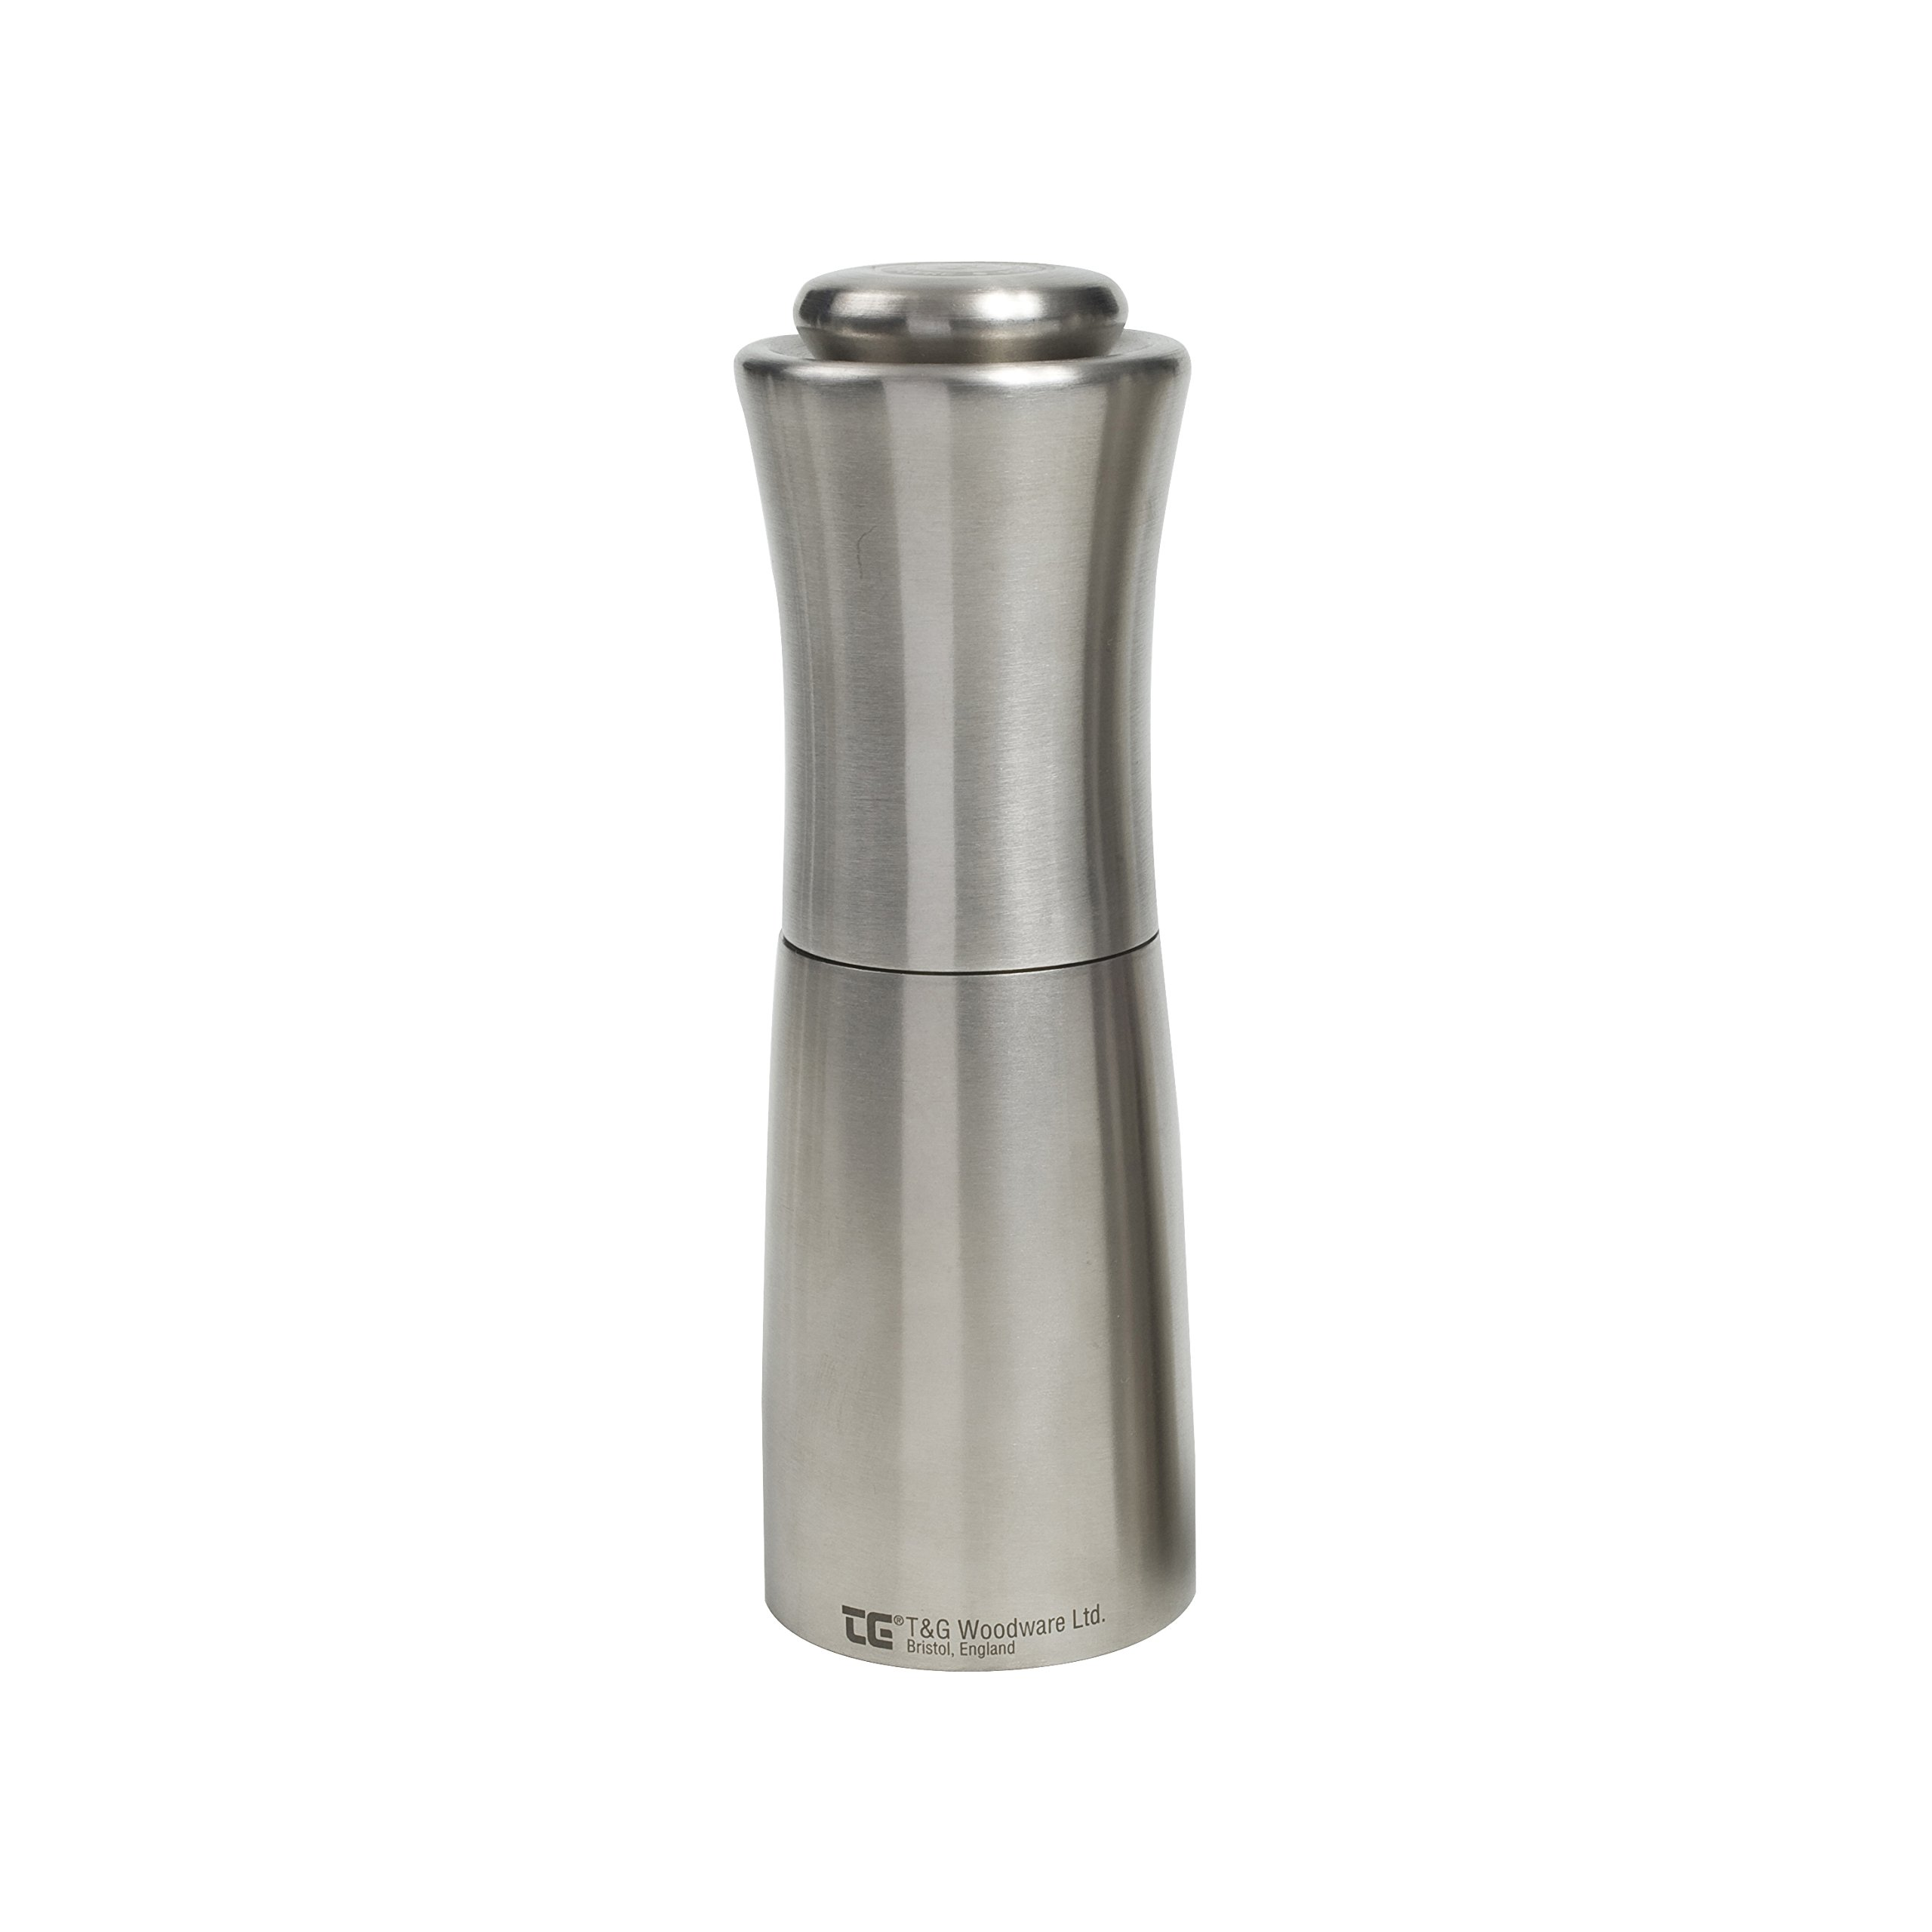 T&G CrushGrind Apollo Pepper Mill, Stainless Steel, 150 mm by T&G Woodware